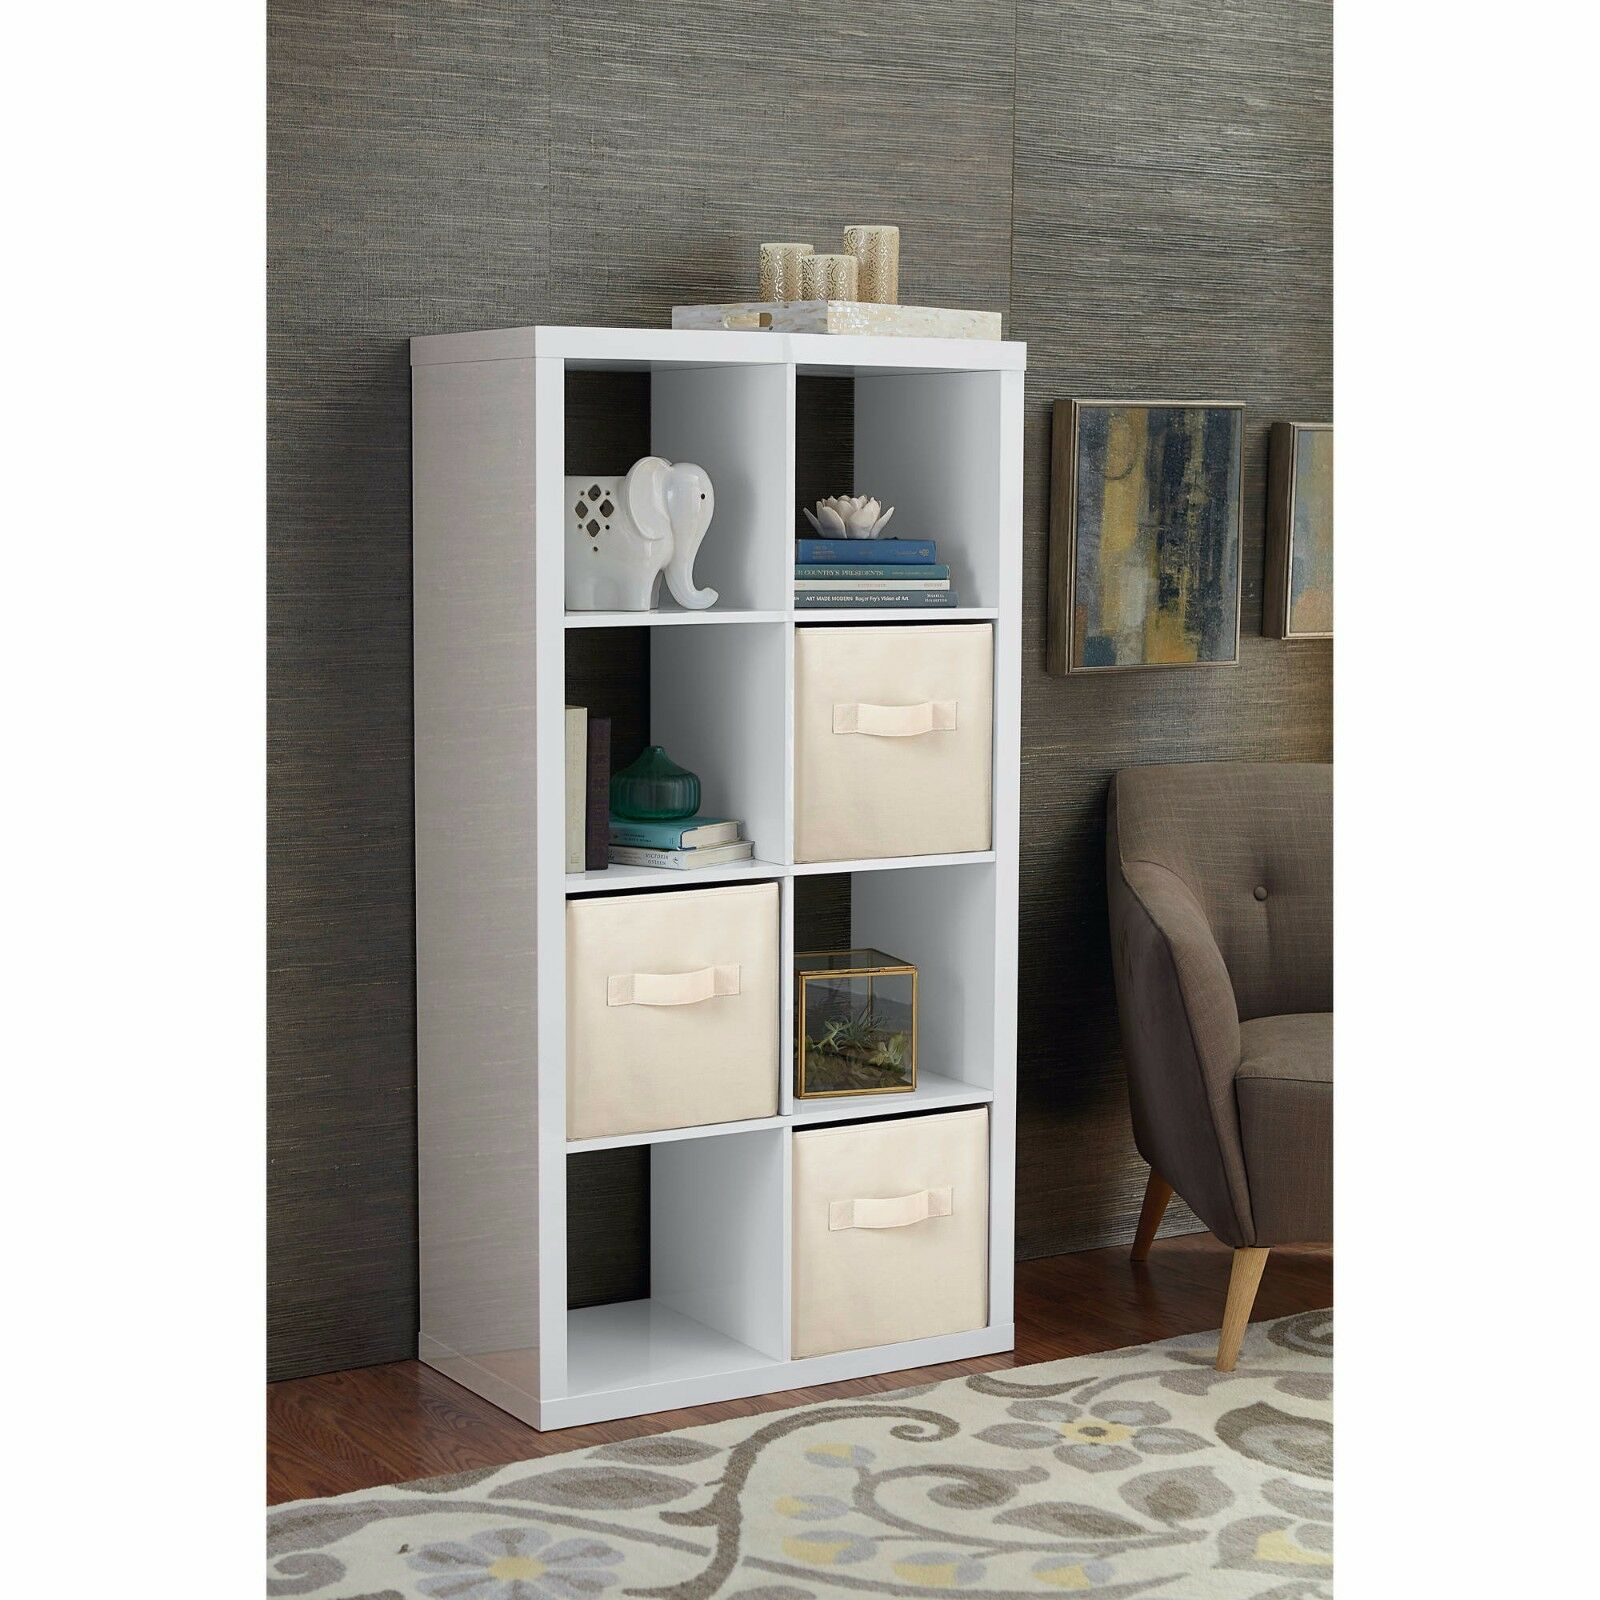 Better Homes And Gardens 8 Cube Organizer Storage Bookcase